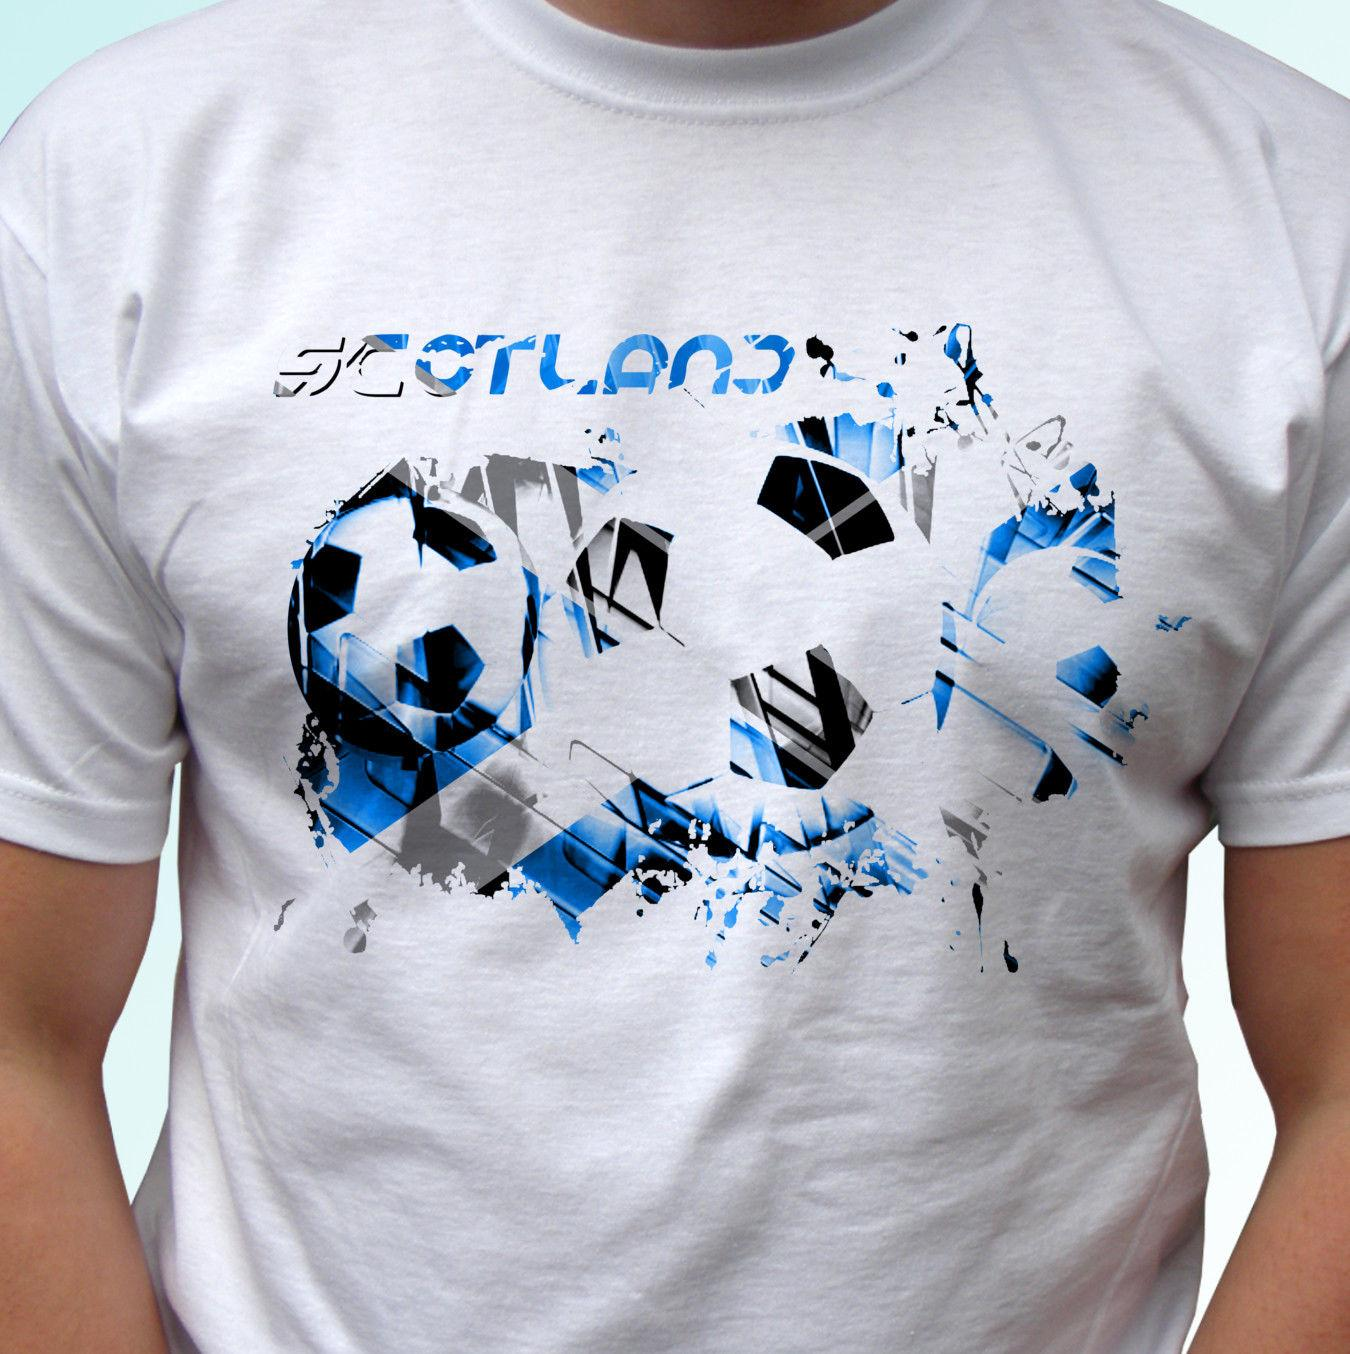 Scotland football flag white t shirt soccer style design mens womens kids  Funny free shipping Unisex Casual Tshirt top